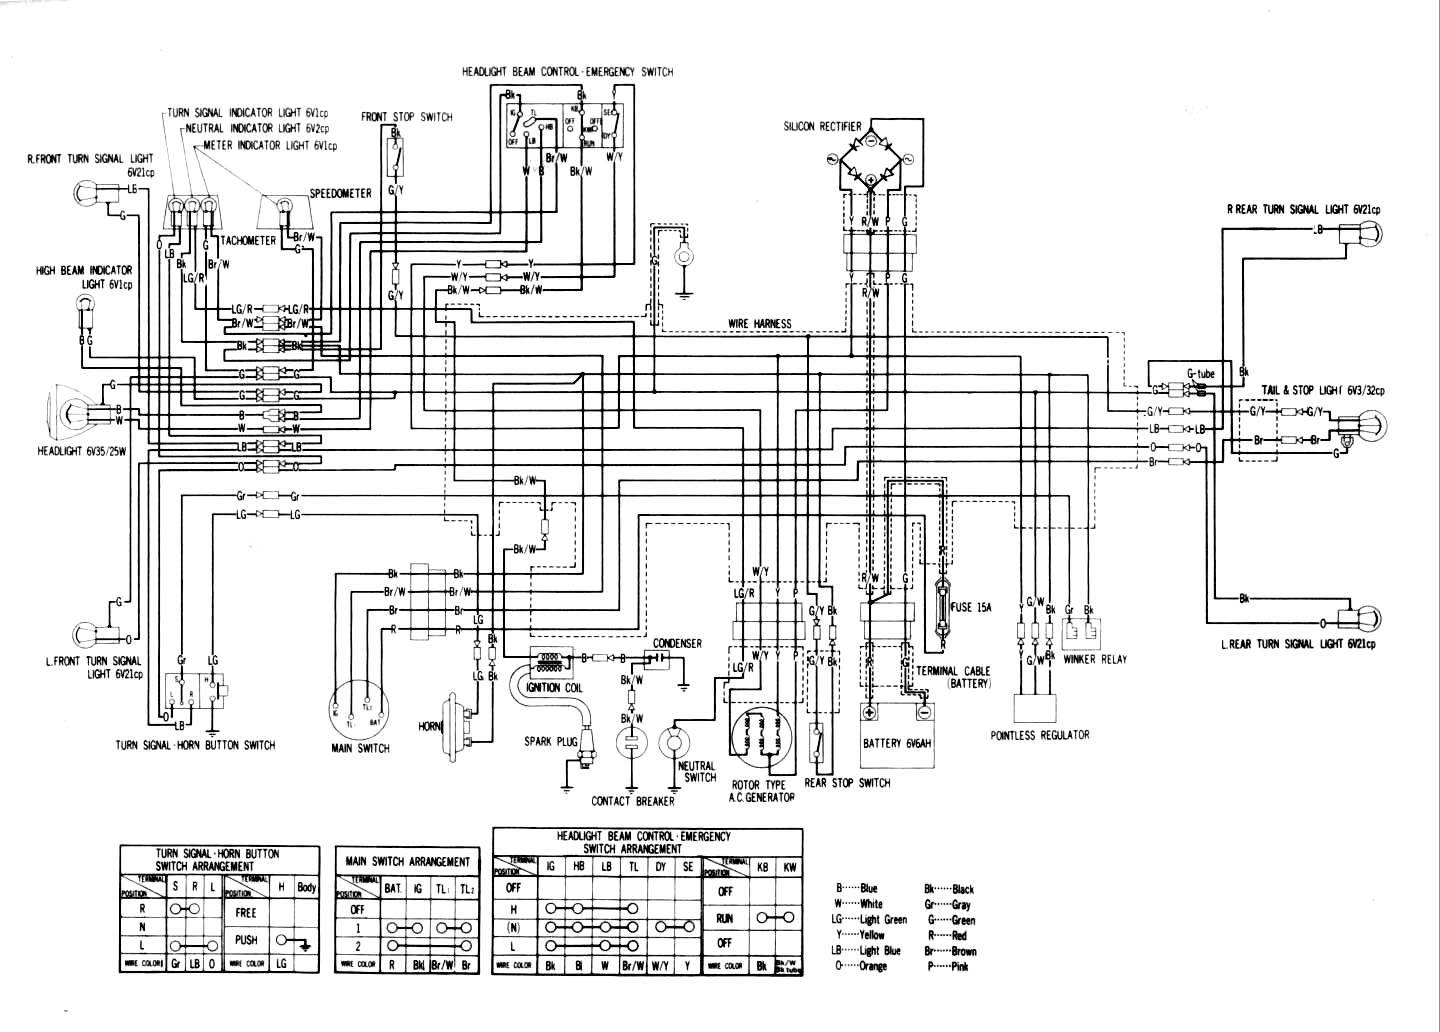 Honda XL175 Wiring Diagrams 2 index of images e e9 honda shadow vlx 600 wiring diagram at edmiracle.co